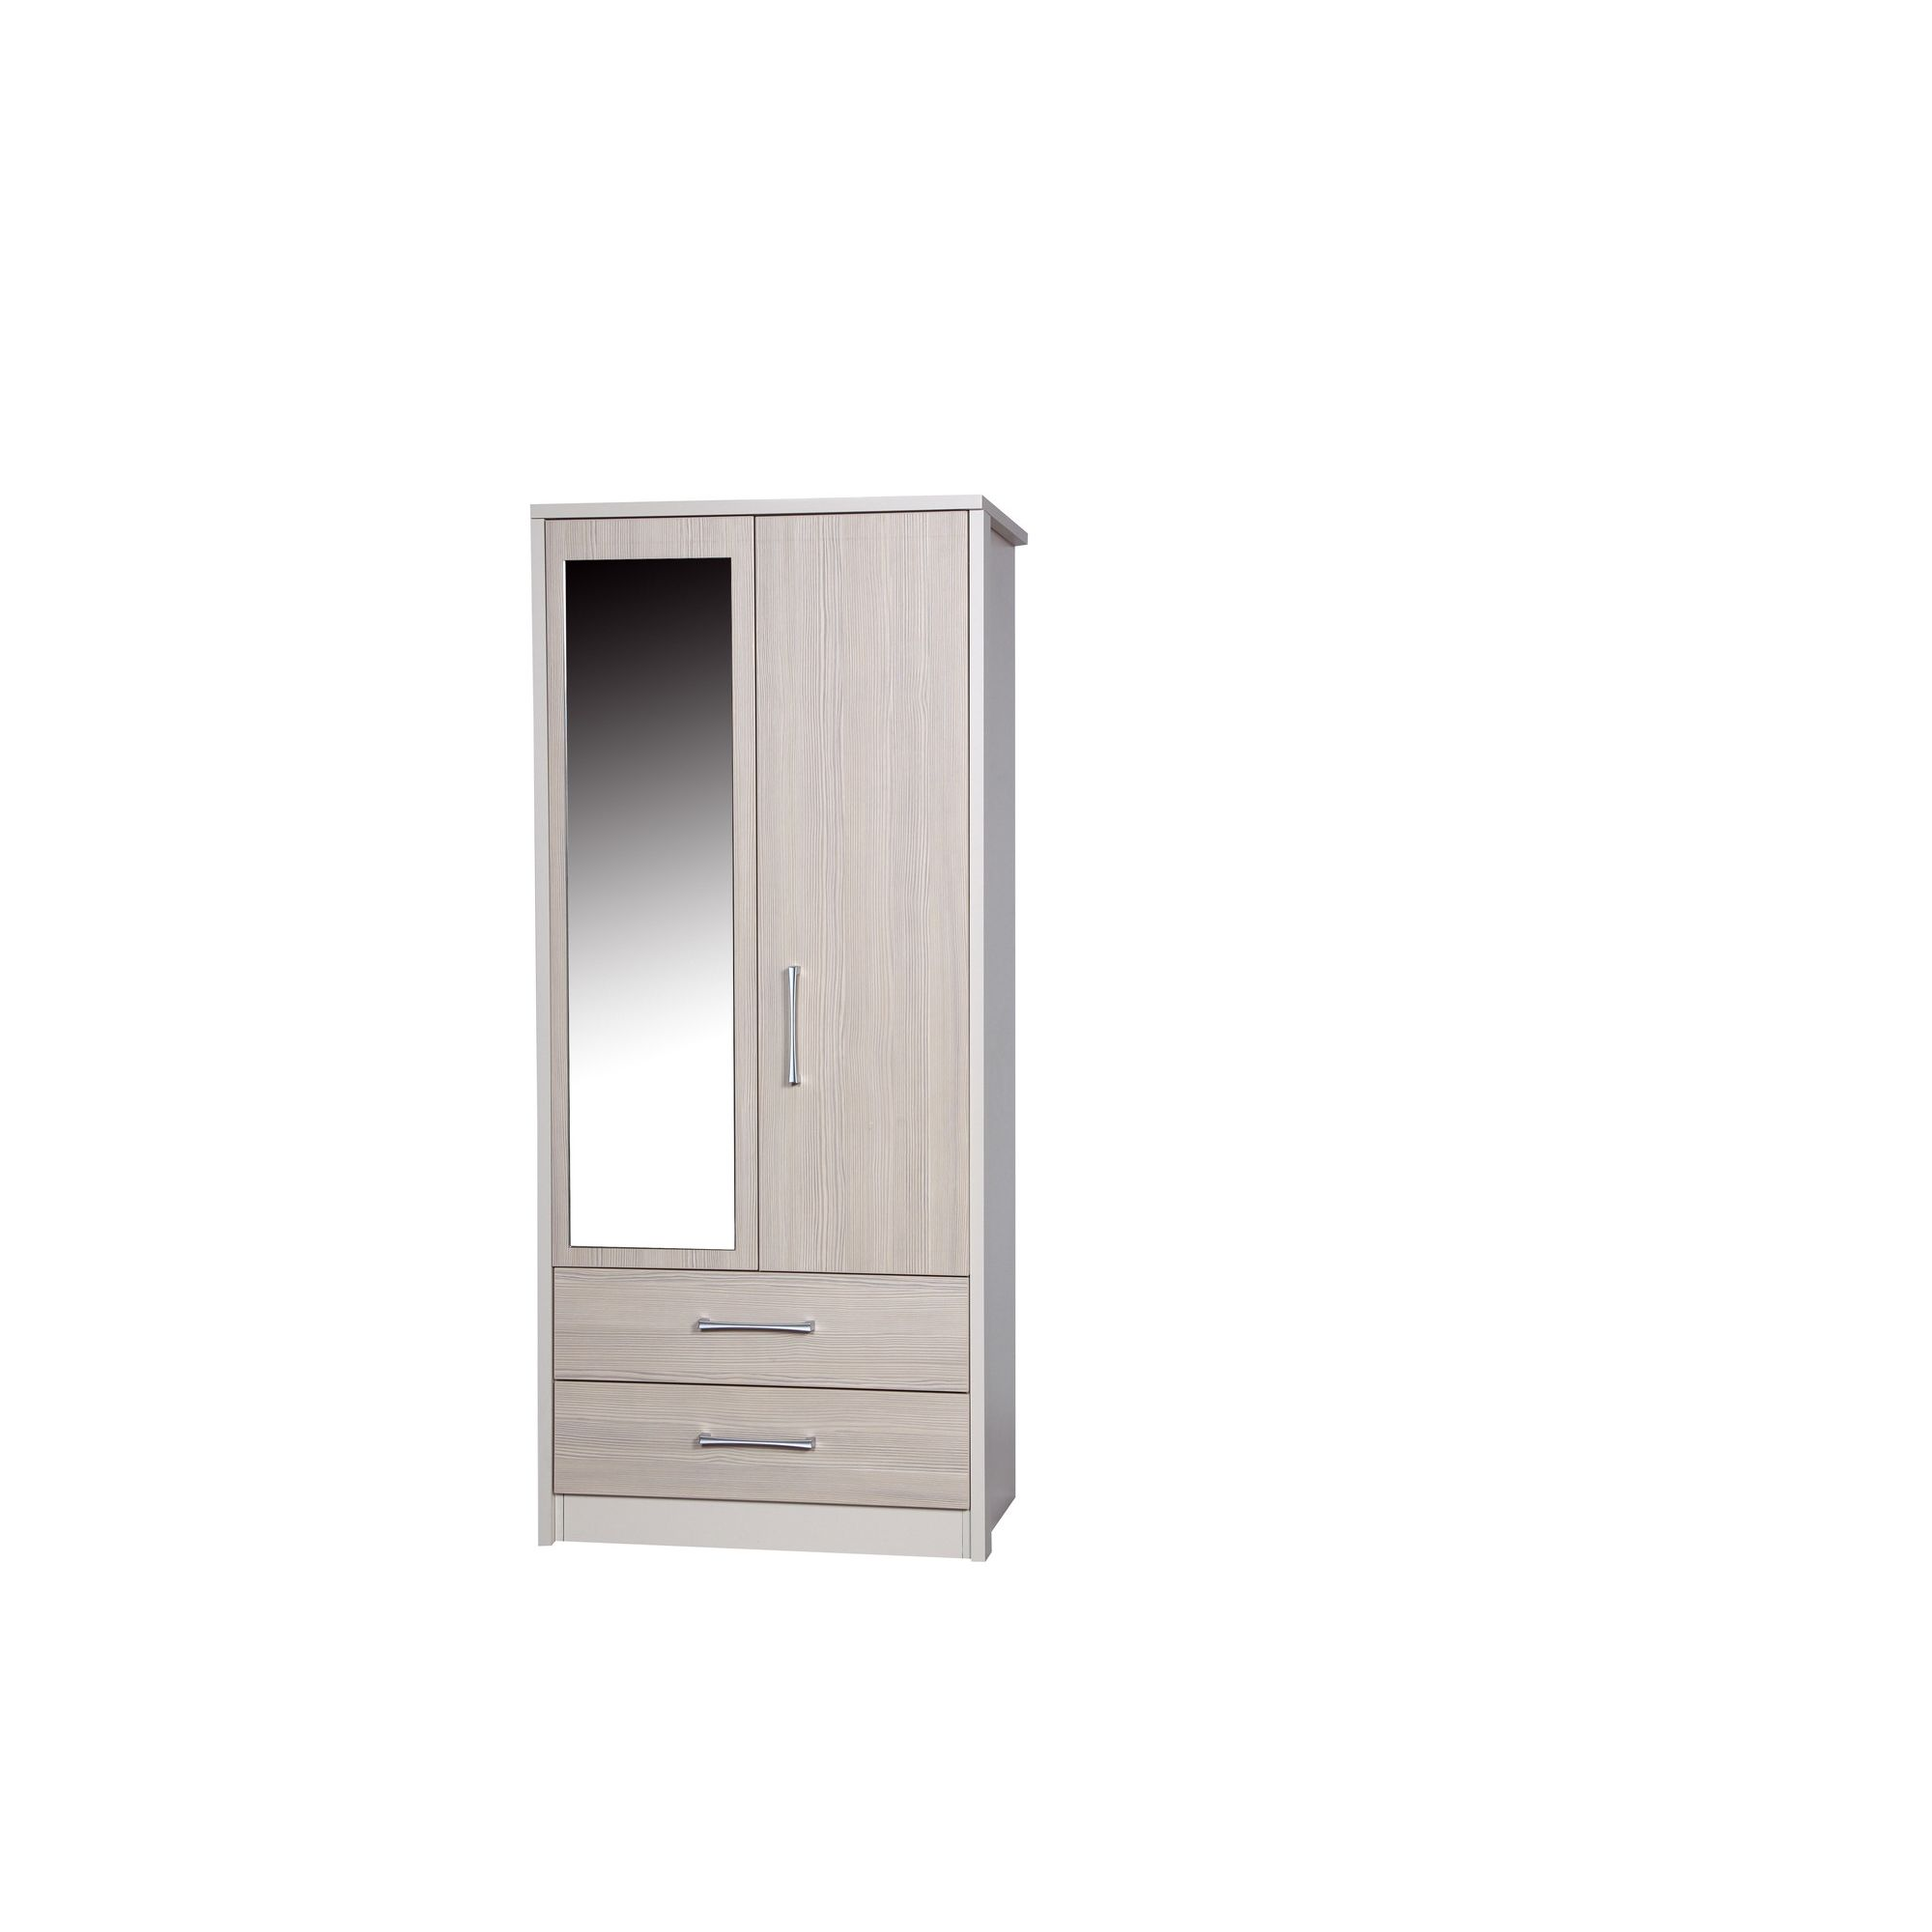 Alto Furniture Avola 2 Drawer Combi Wardrobe with Mirror - Cream Carcass With Grey Avola at Tesco Direct